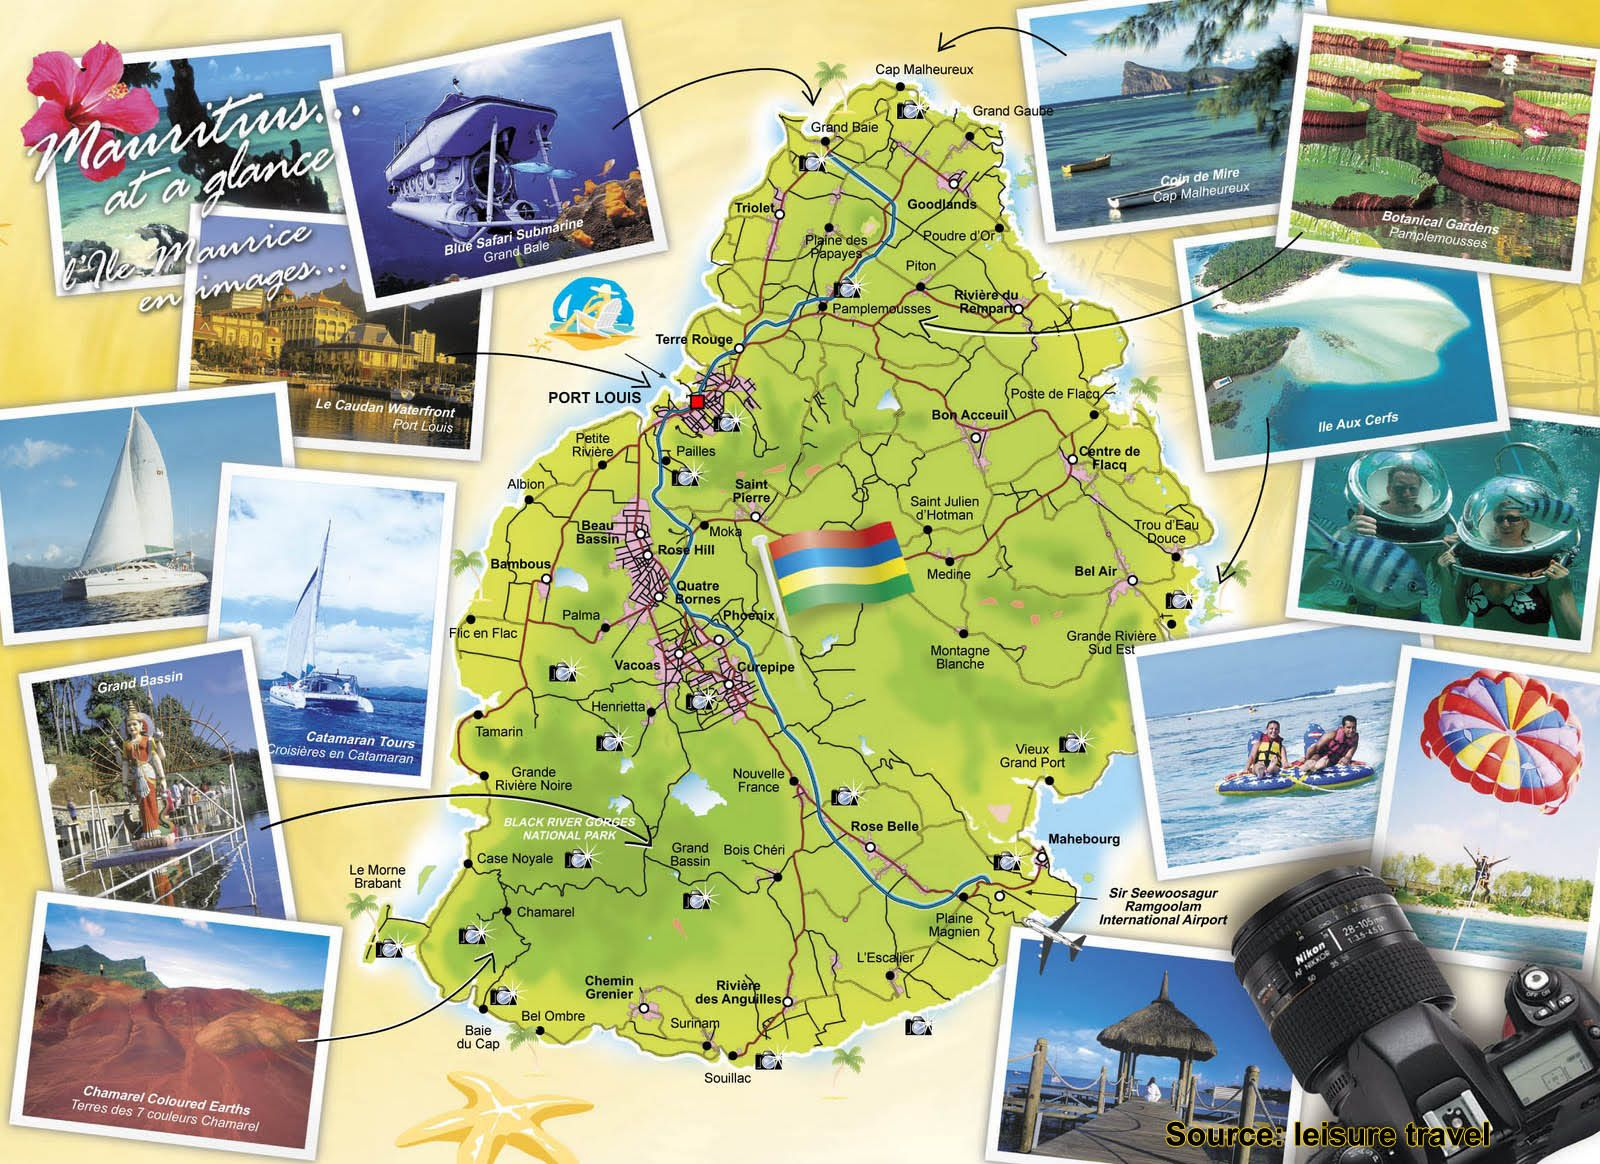 the mauritius attractions map offers a basic